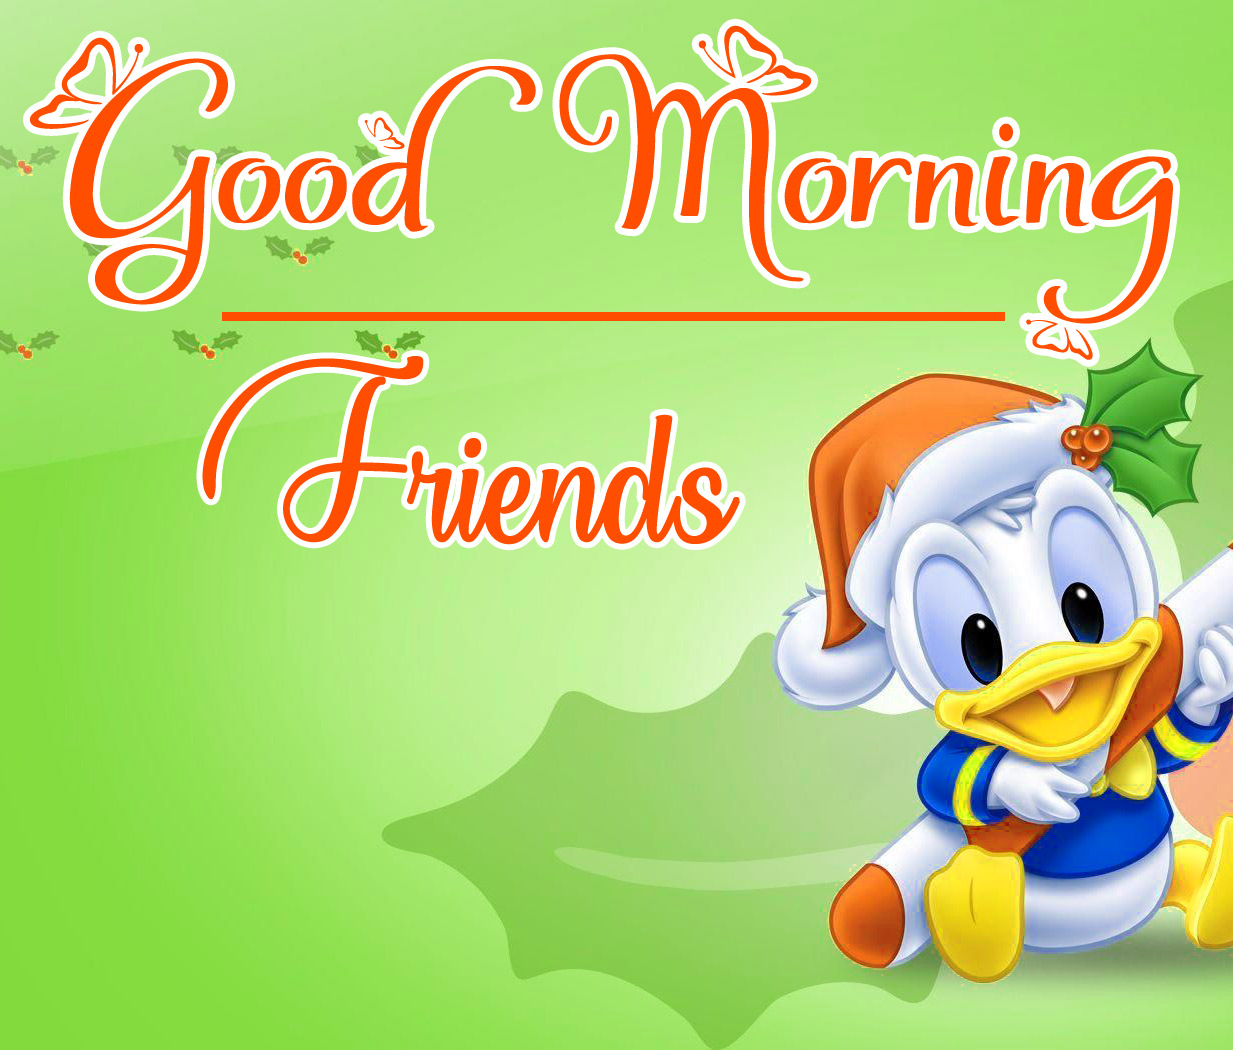 Cartoon good Morning Images